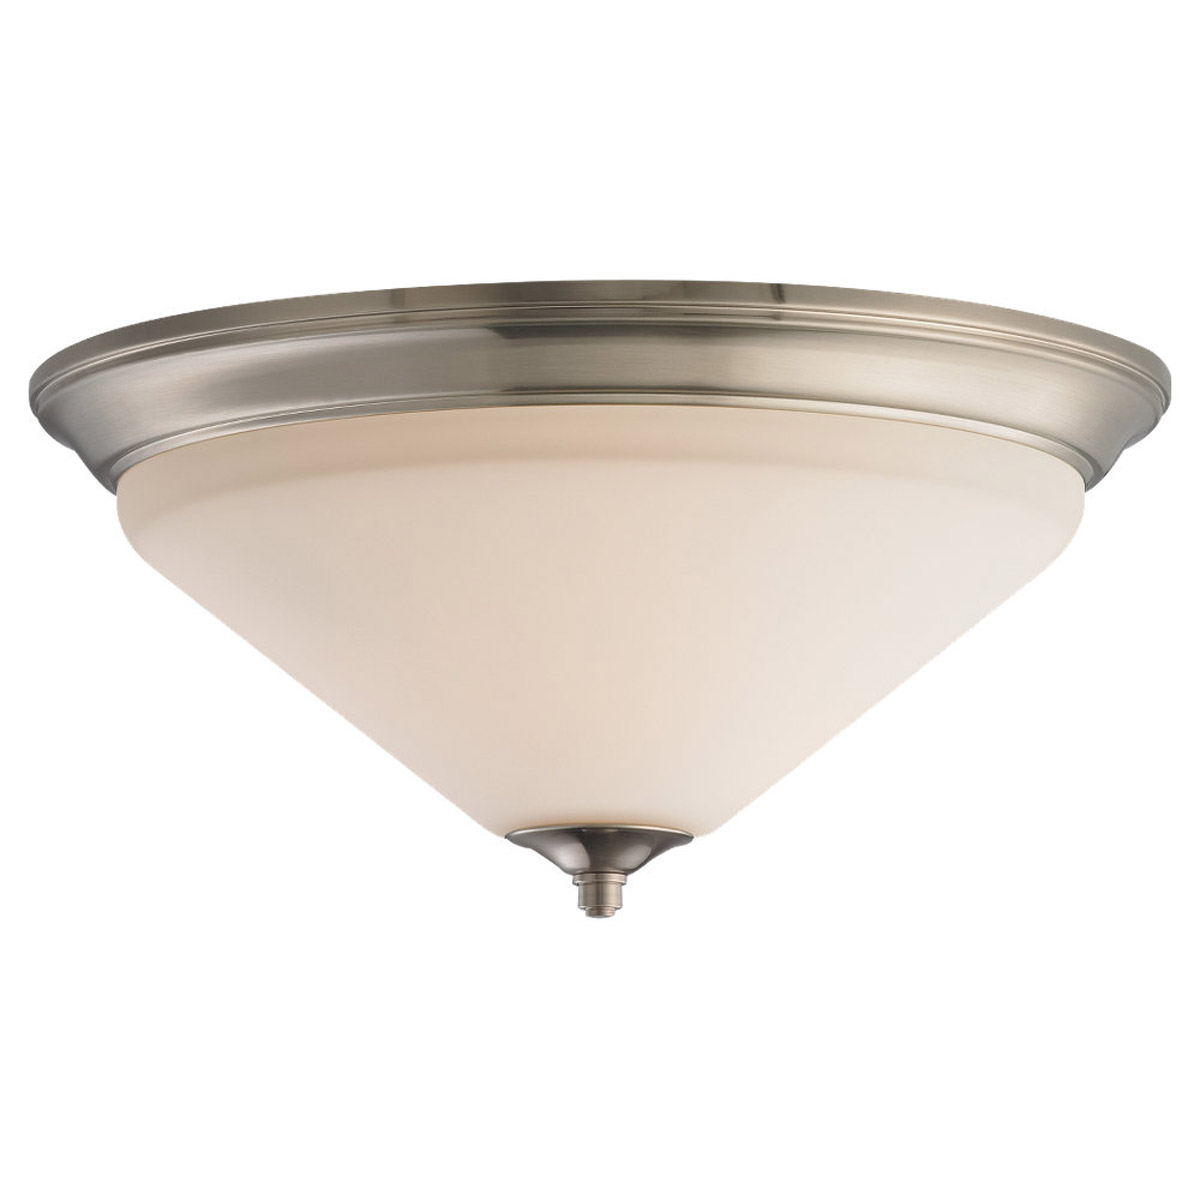 Sea Gull Lighting Belair 3 Light Flush Mount in Brushed Nickel 75791-962 photo